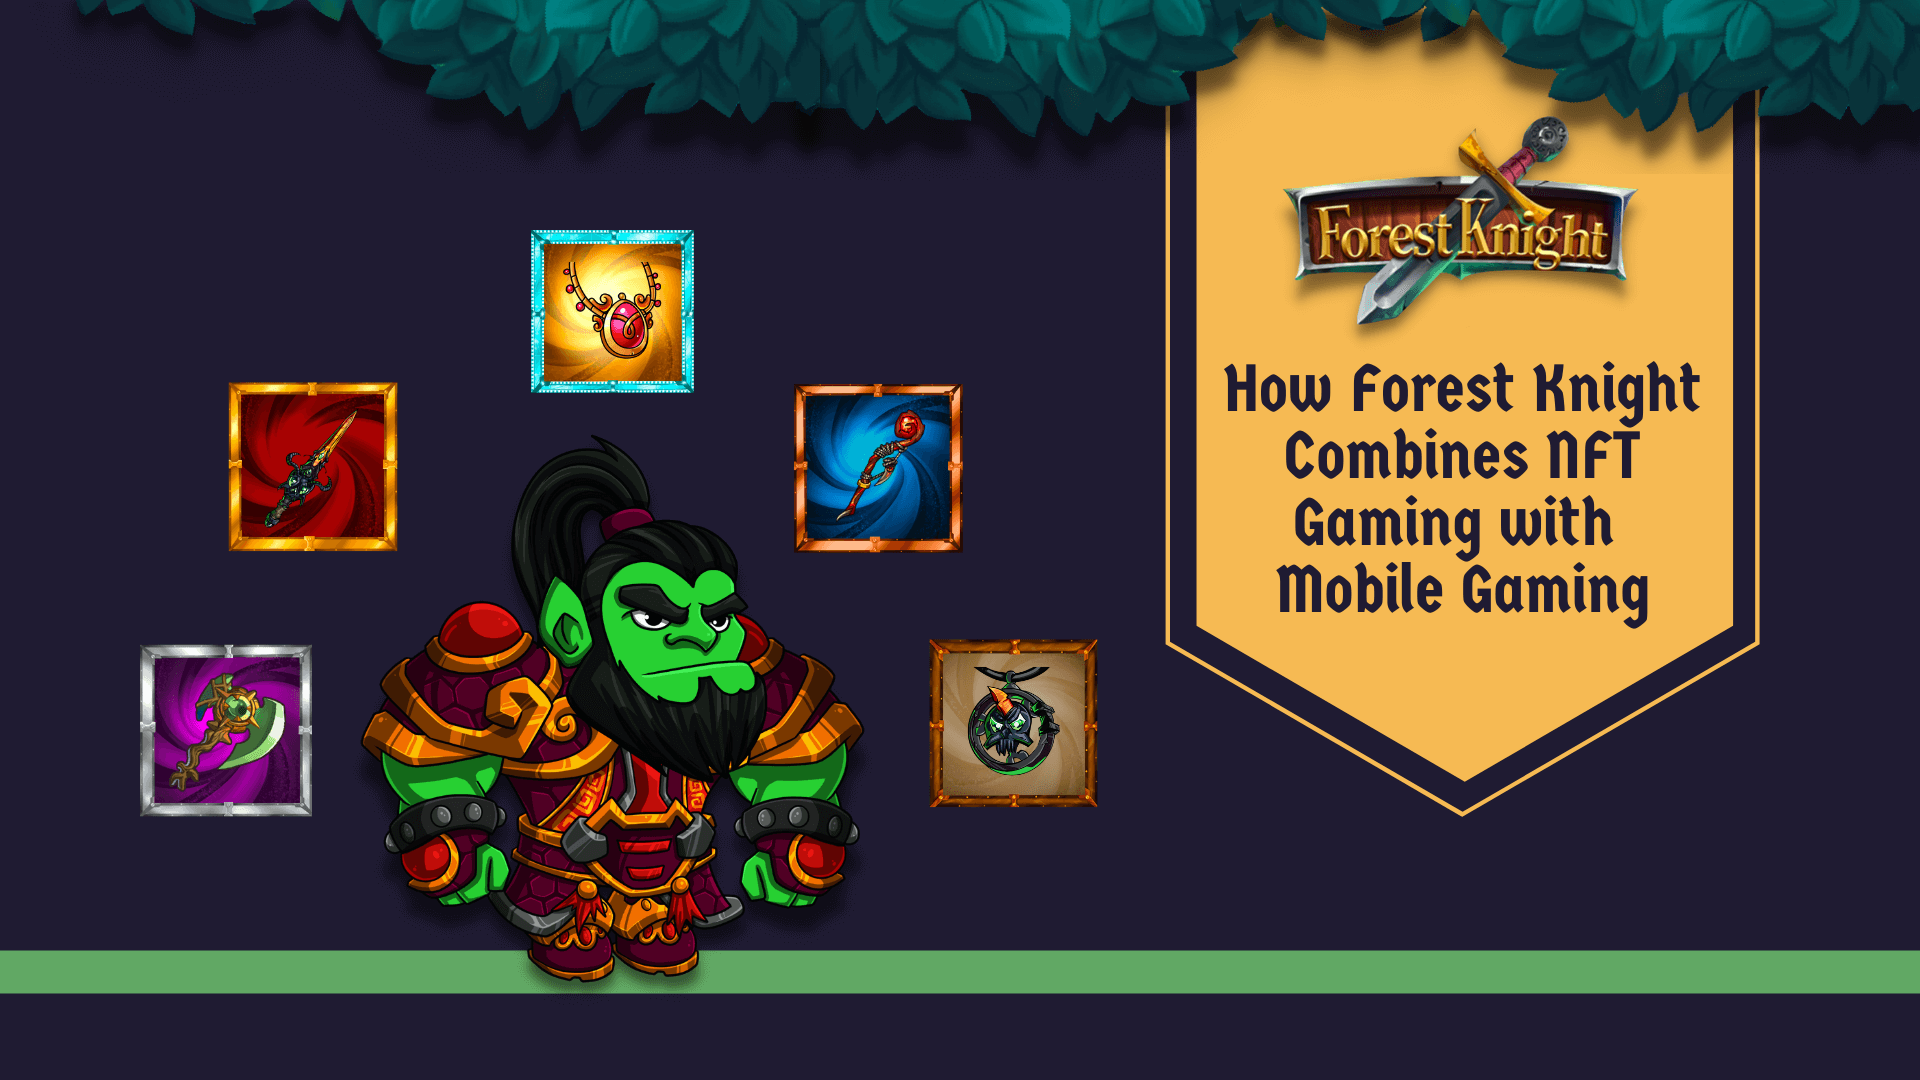 Combining NFT Gaming with Mobile Gaming